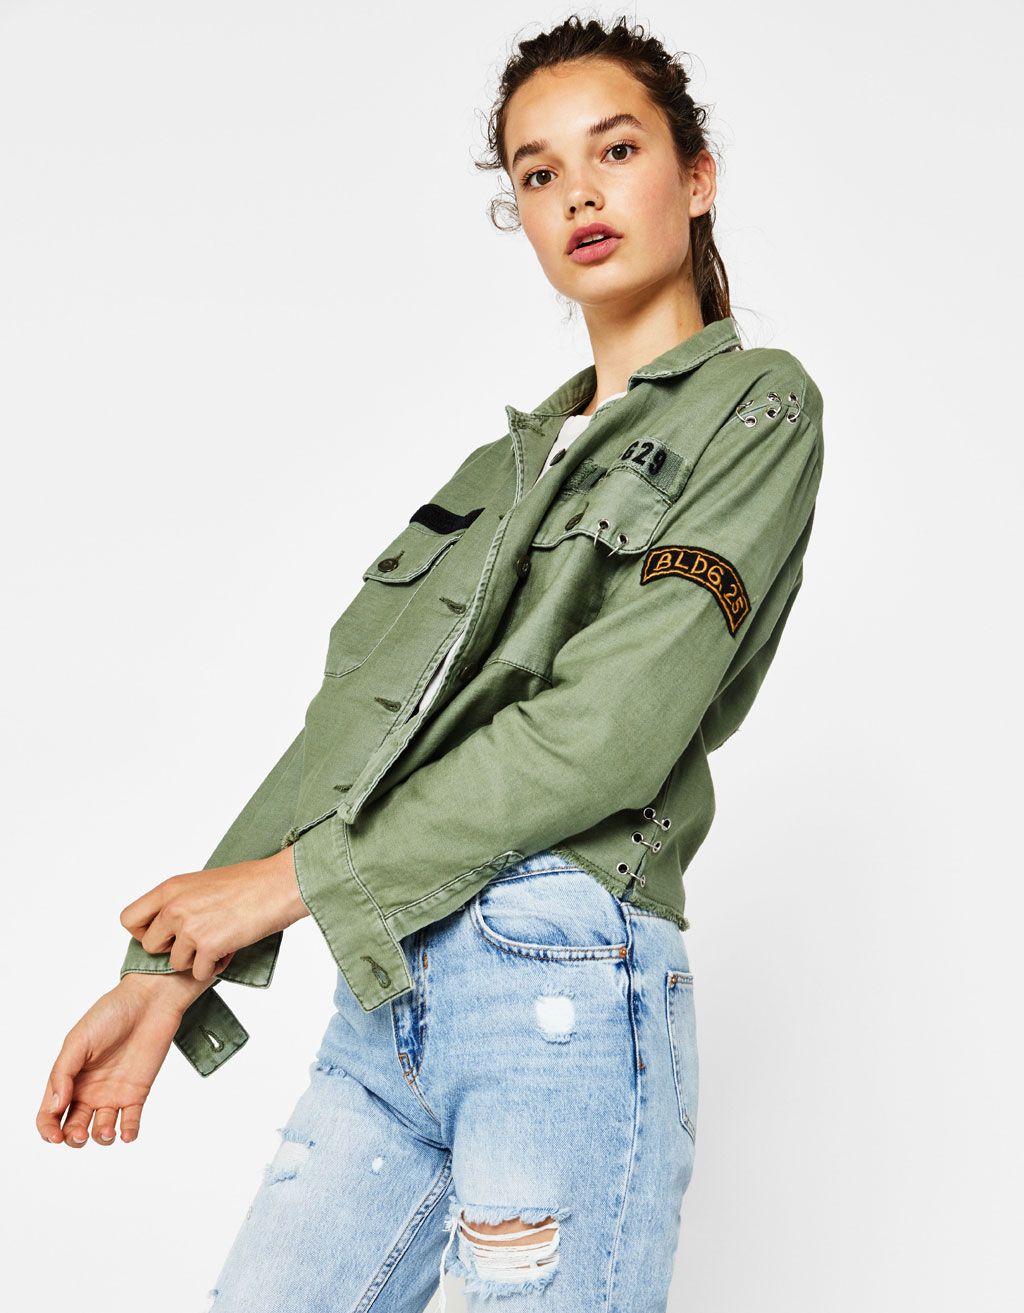 Cropped-Hemdjacke im Military-Look